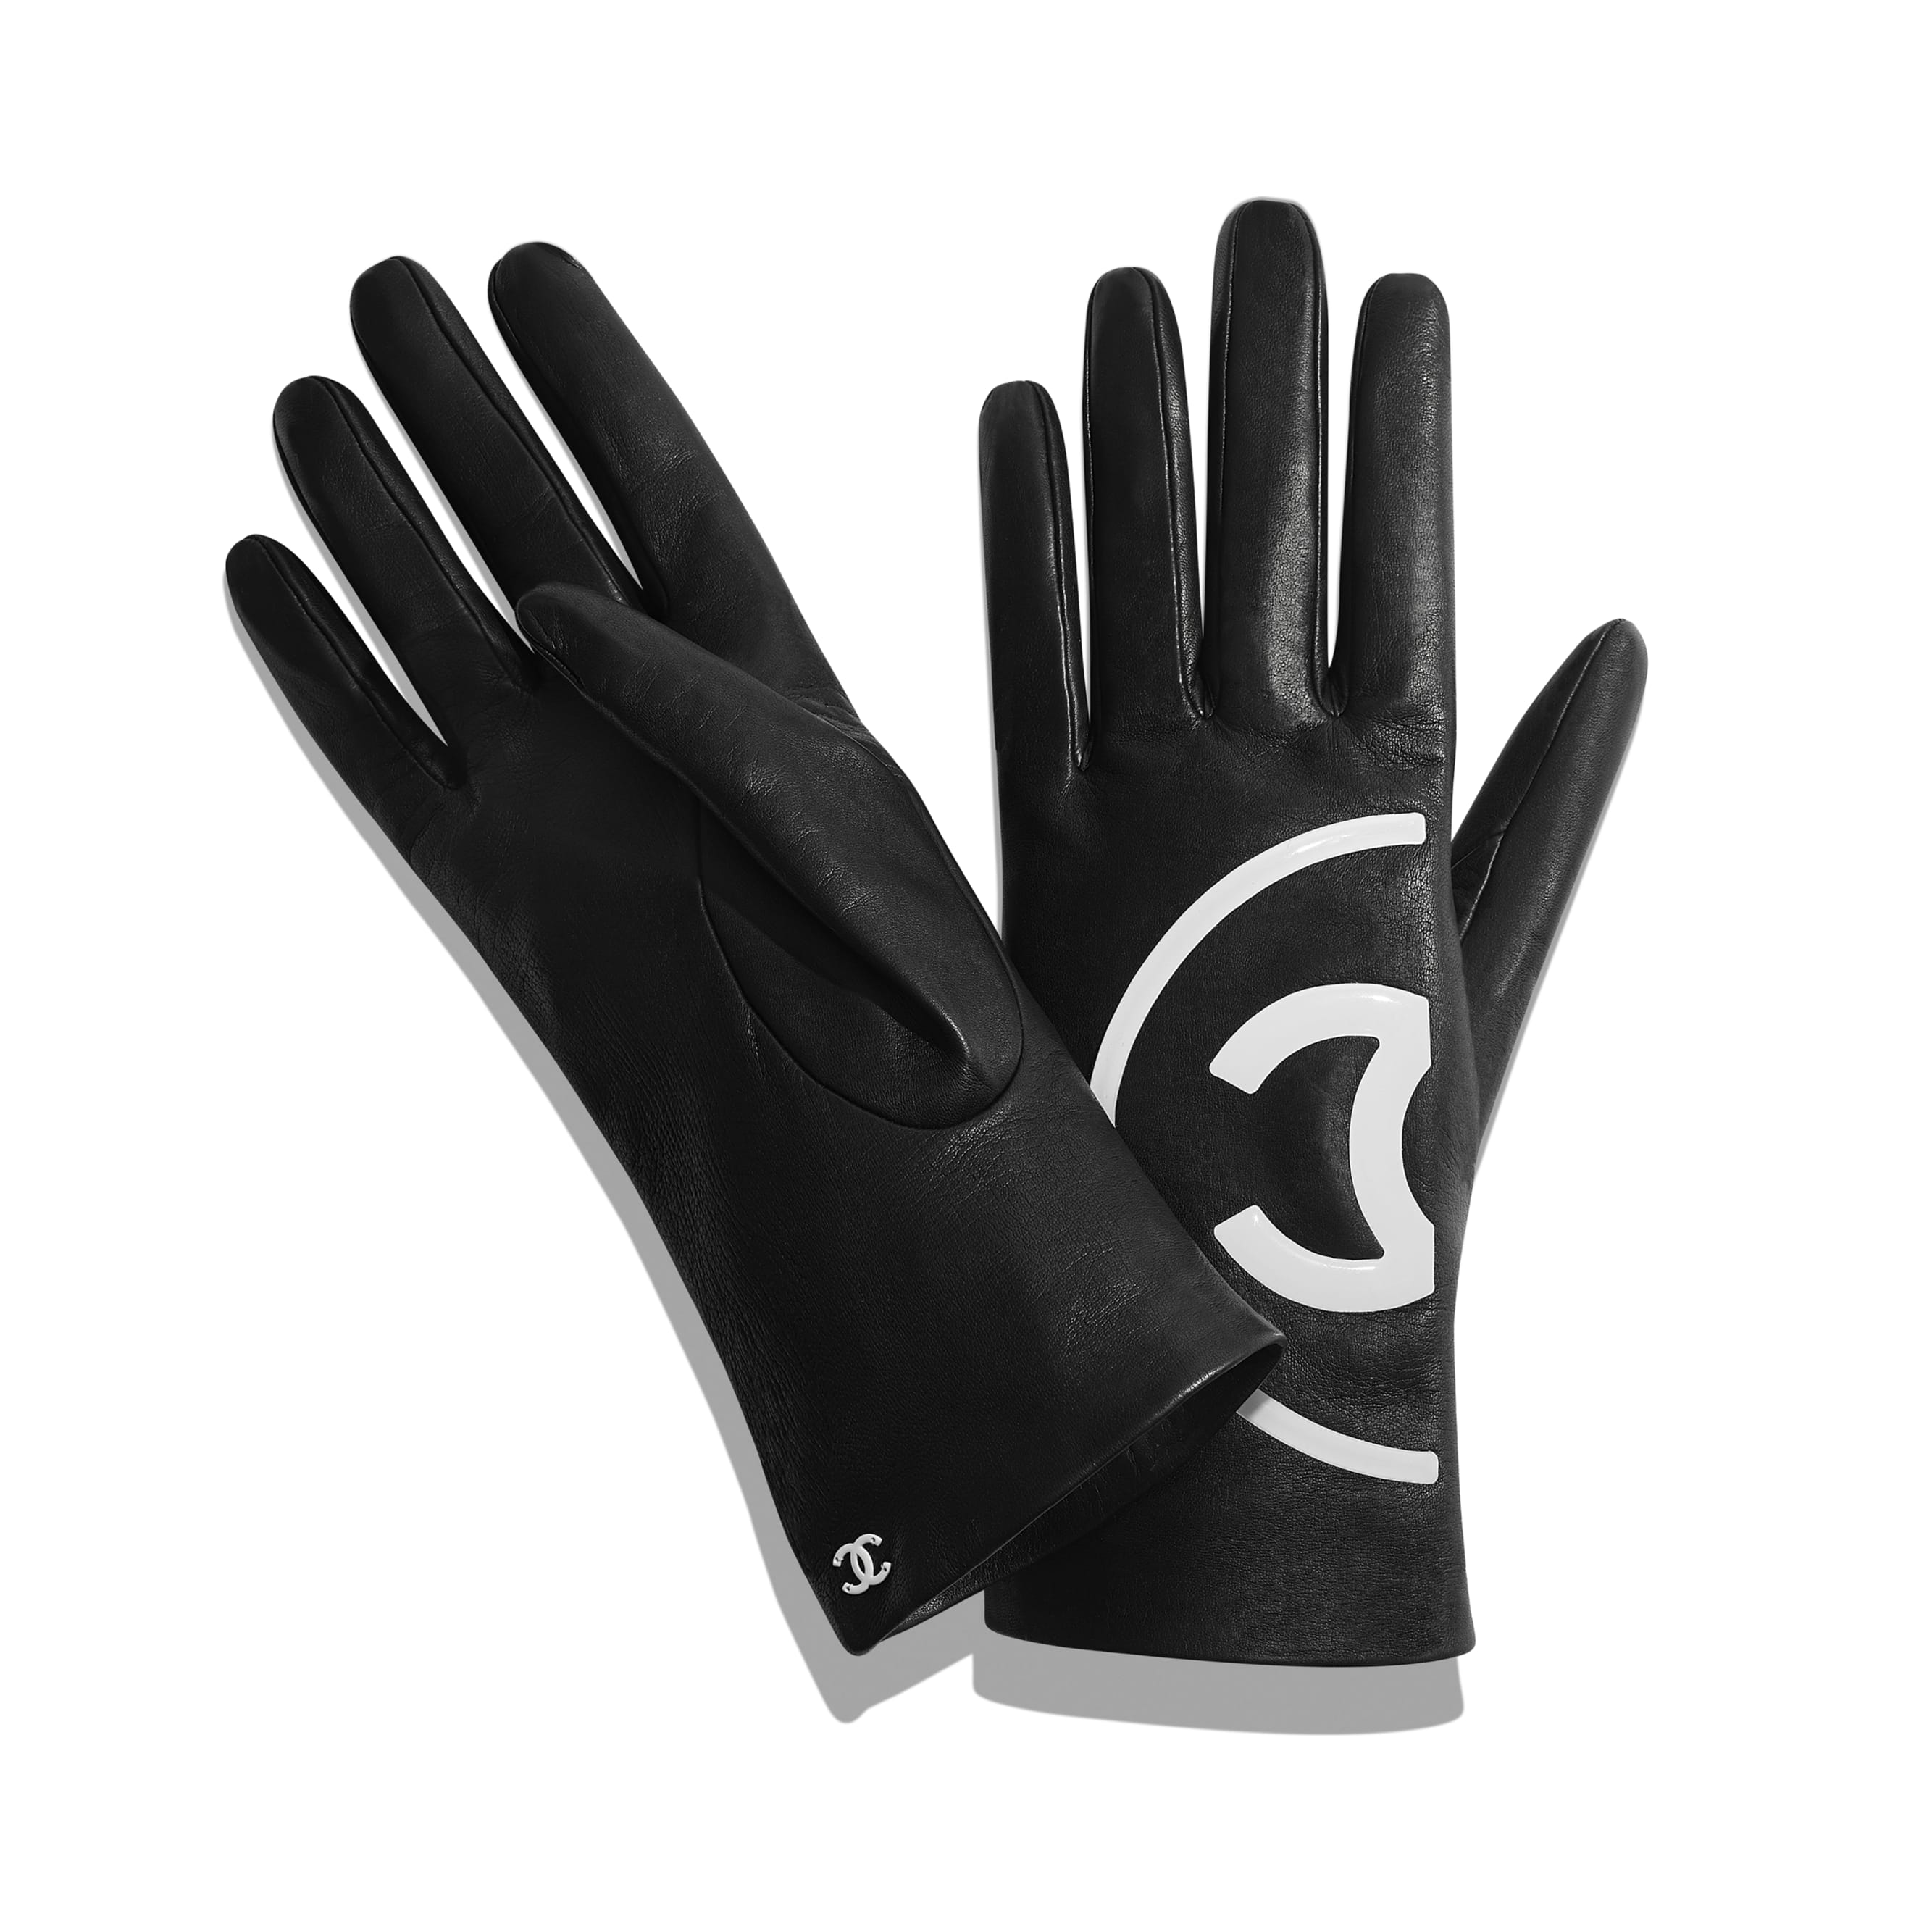 Gloves - Black & White - Lambskin - Alternative view - see standard sized version